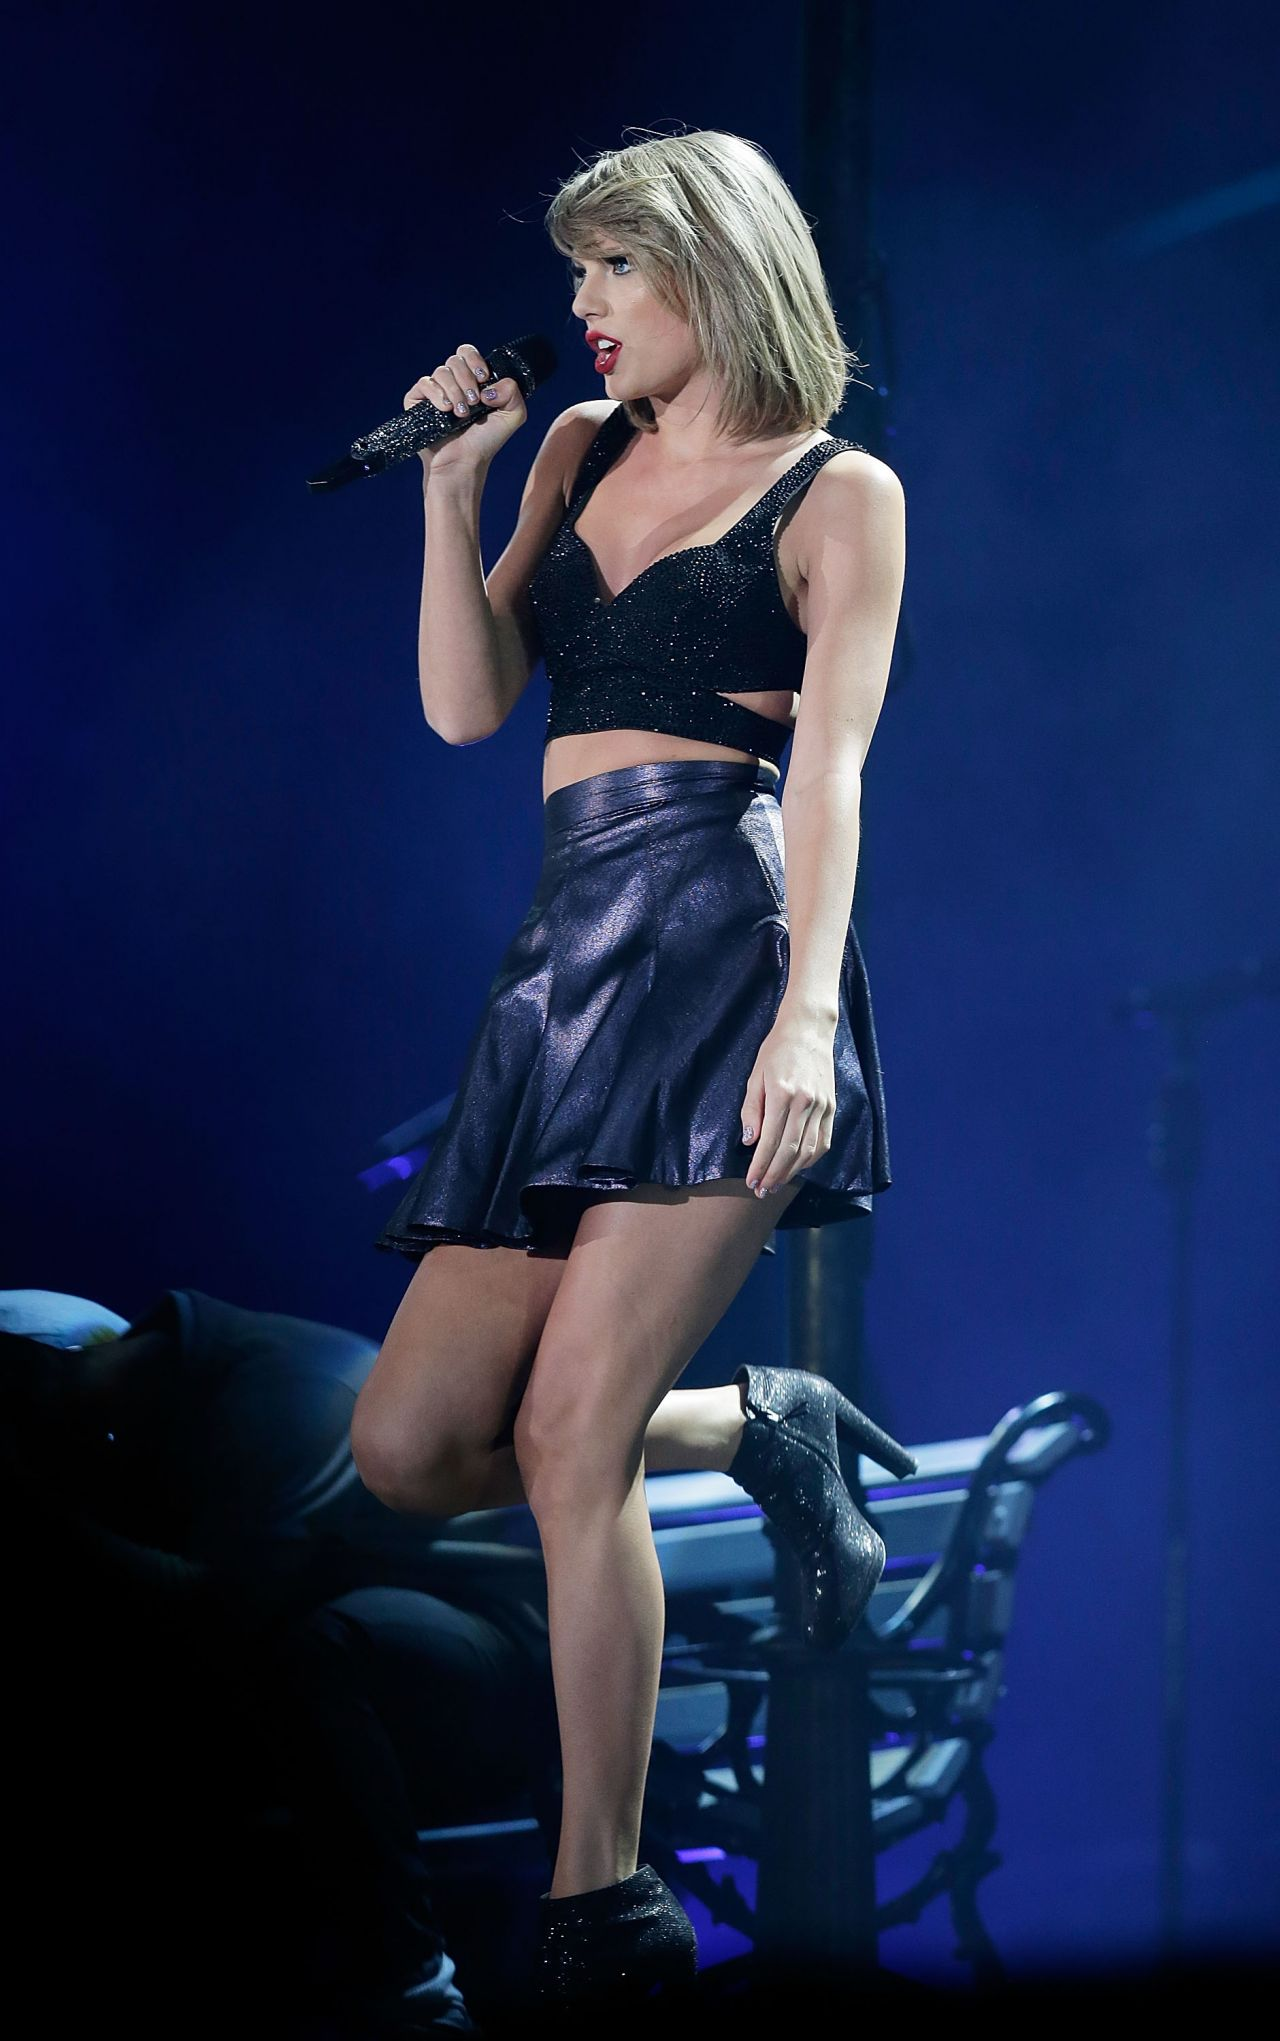 Taylor swift tour dates 1989